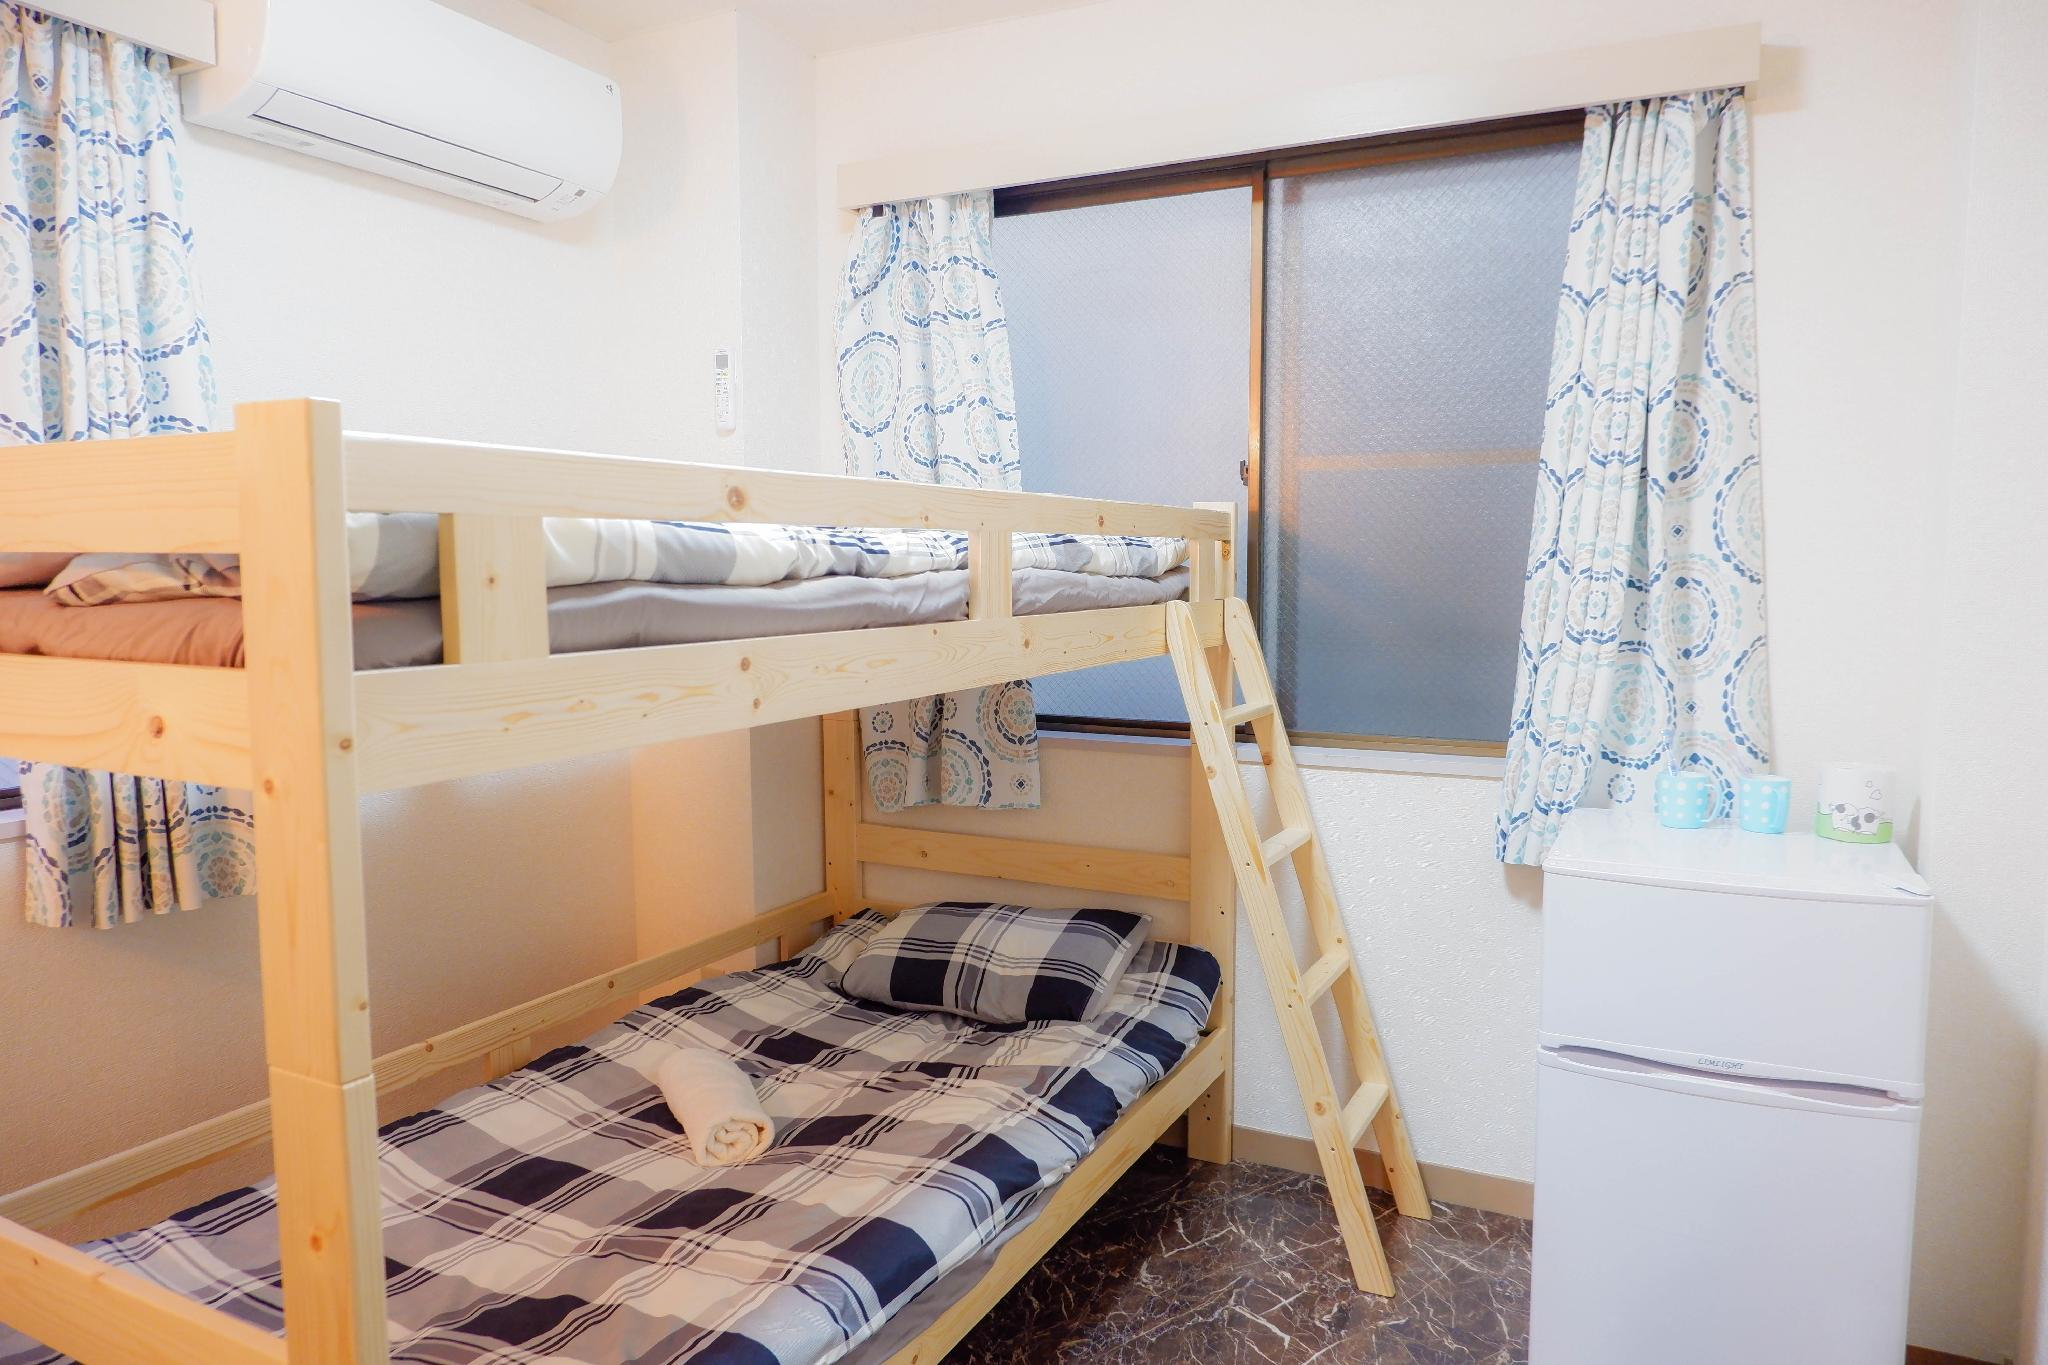 KAIKEAsakusa Bunkbeds Fit For Backpackers Couples3